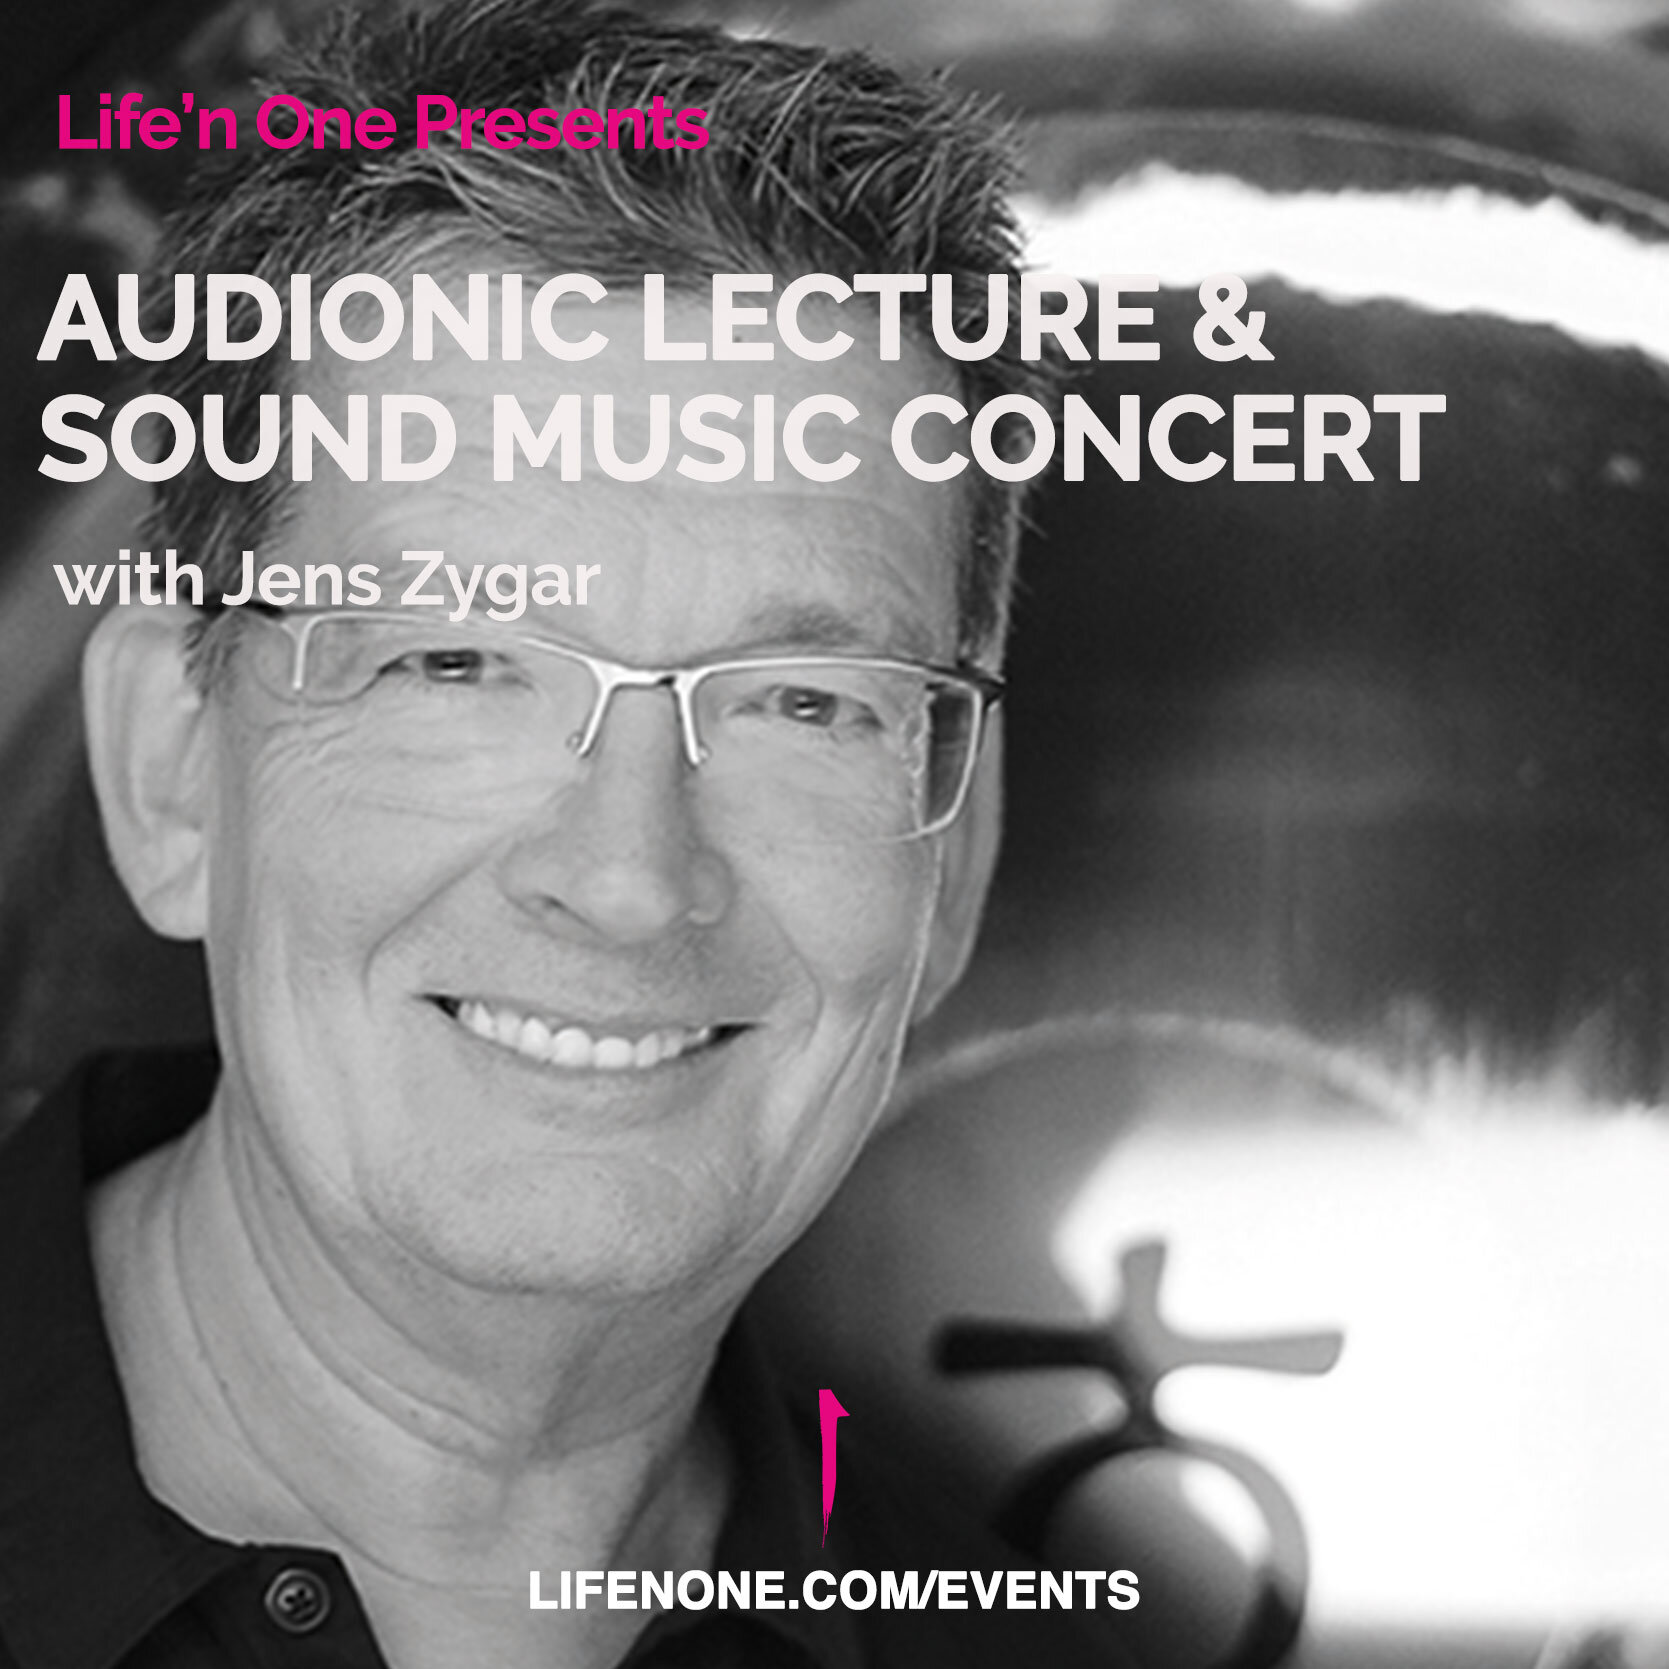 191031-audionic-lecture-&-sound-music-concert-with-Jens.jpg